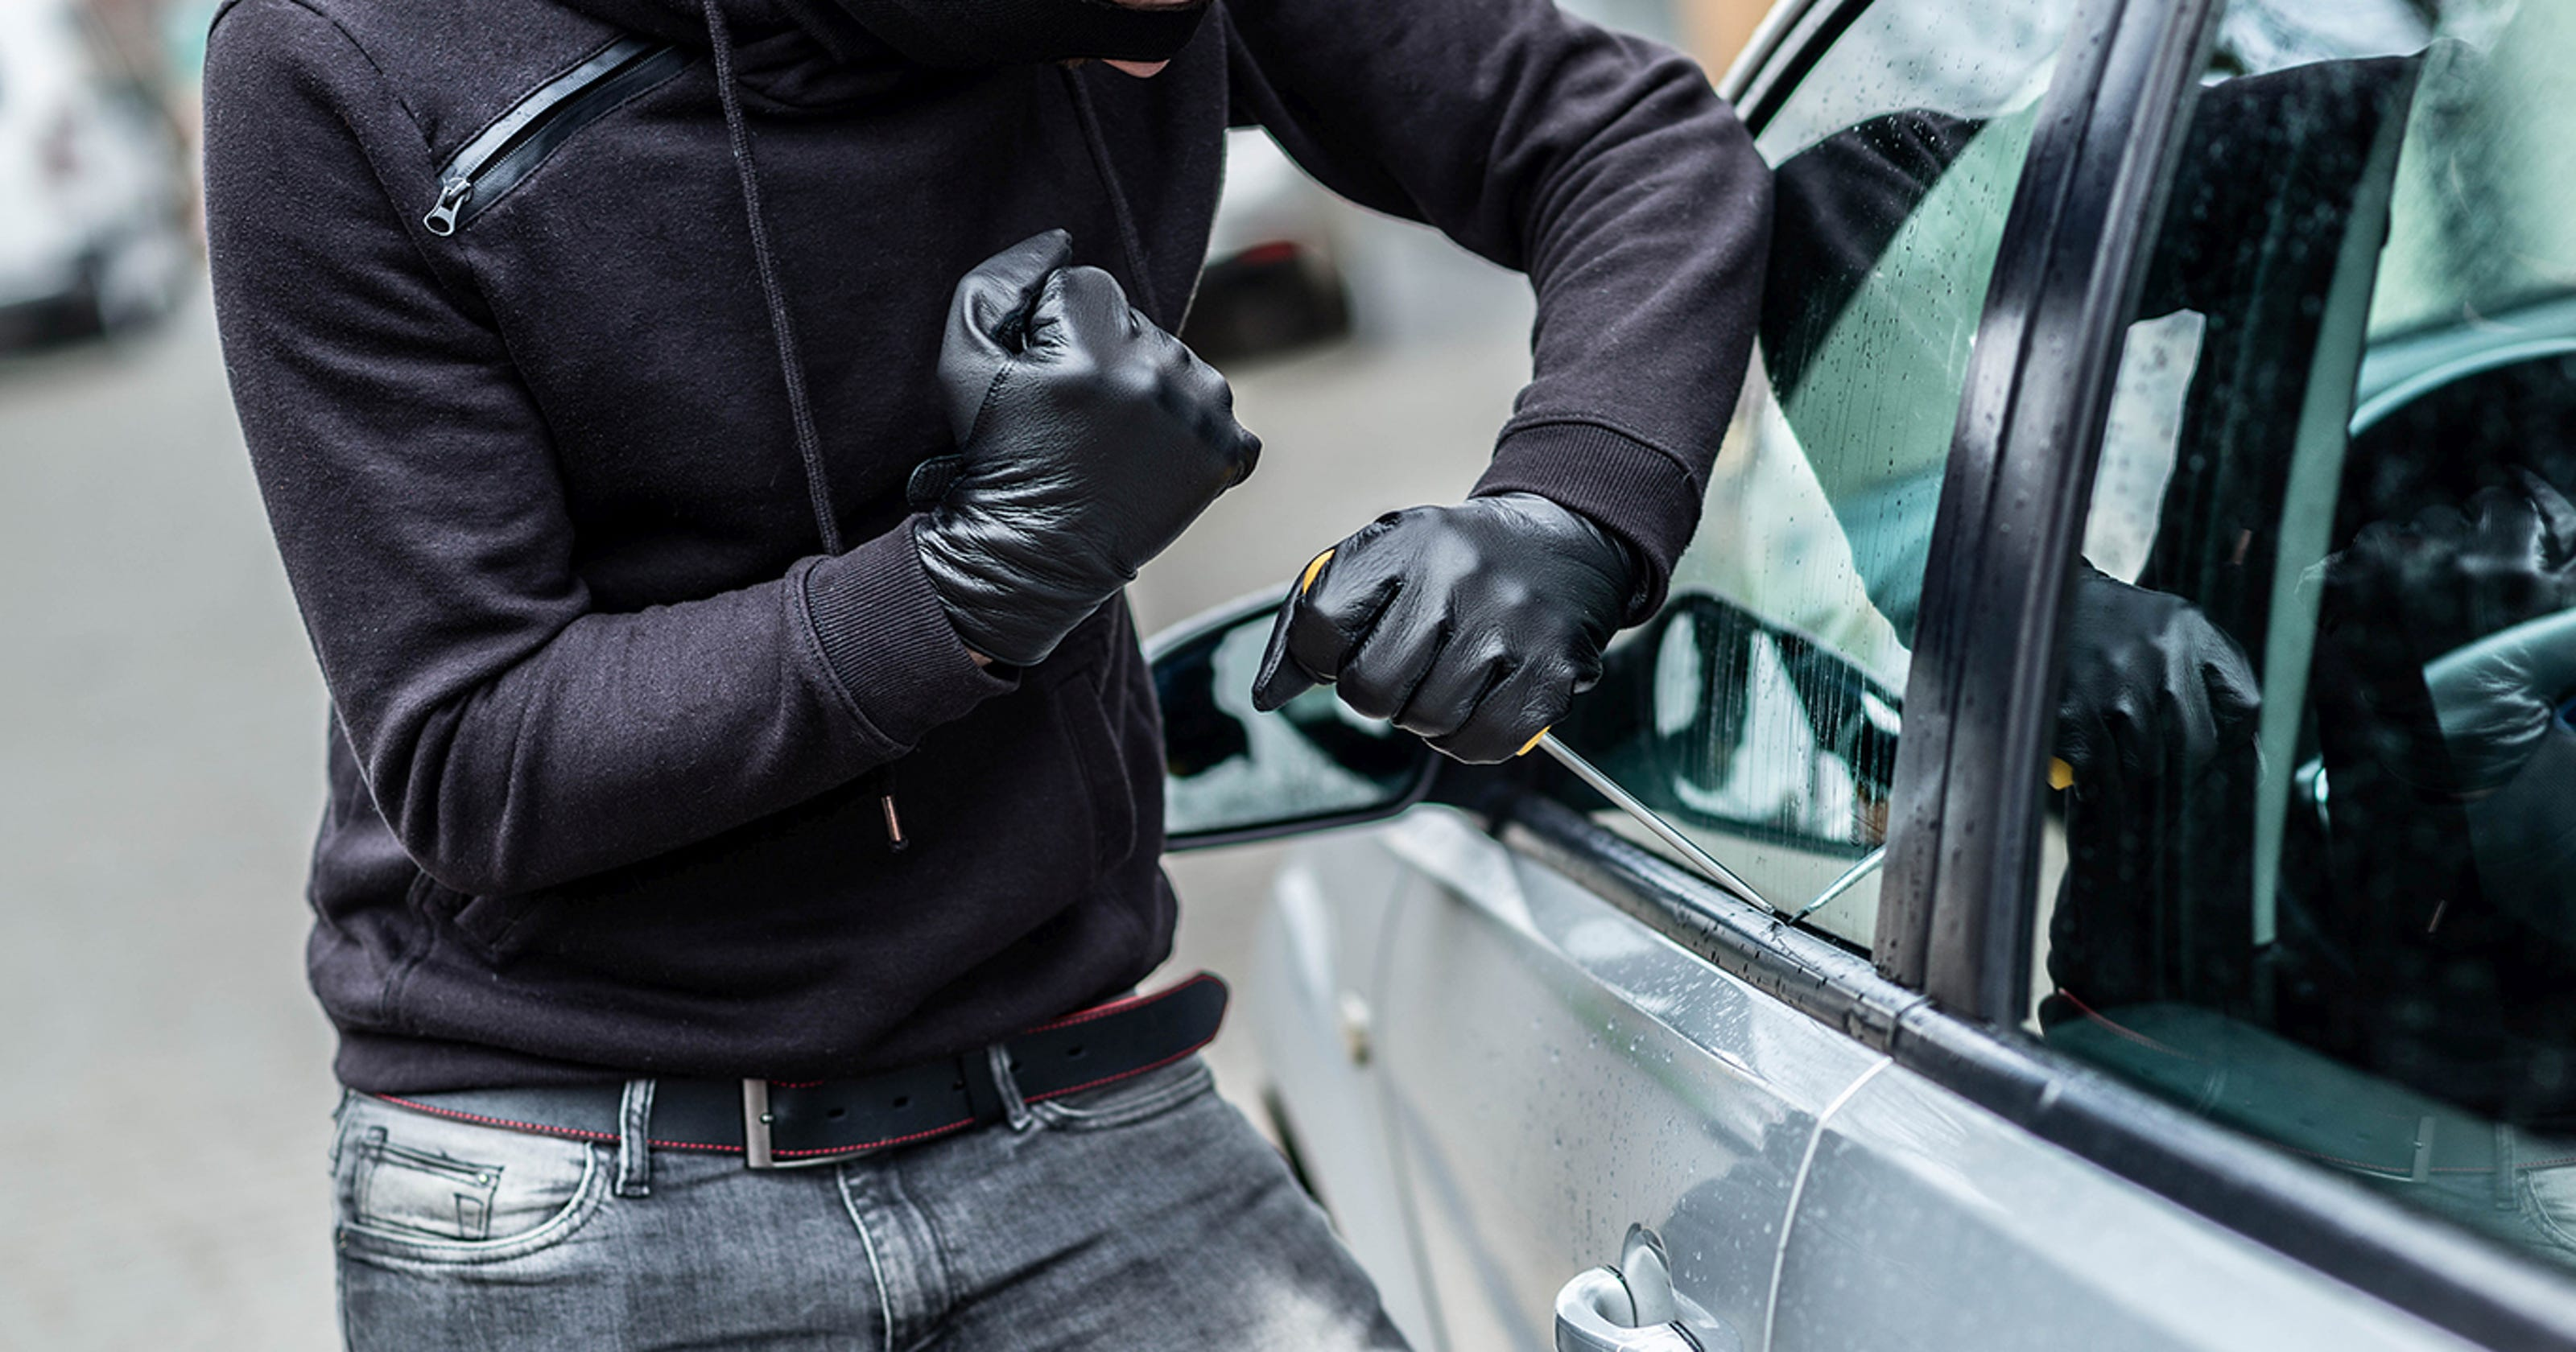 0d46962e3af Drivers left key fobs in their cars and auto theft hit an 8-year high